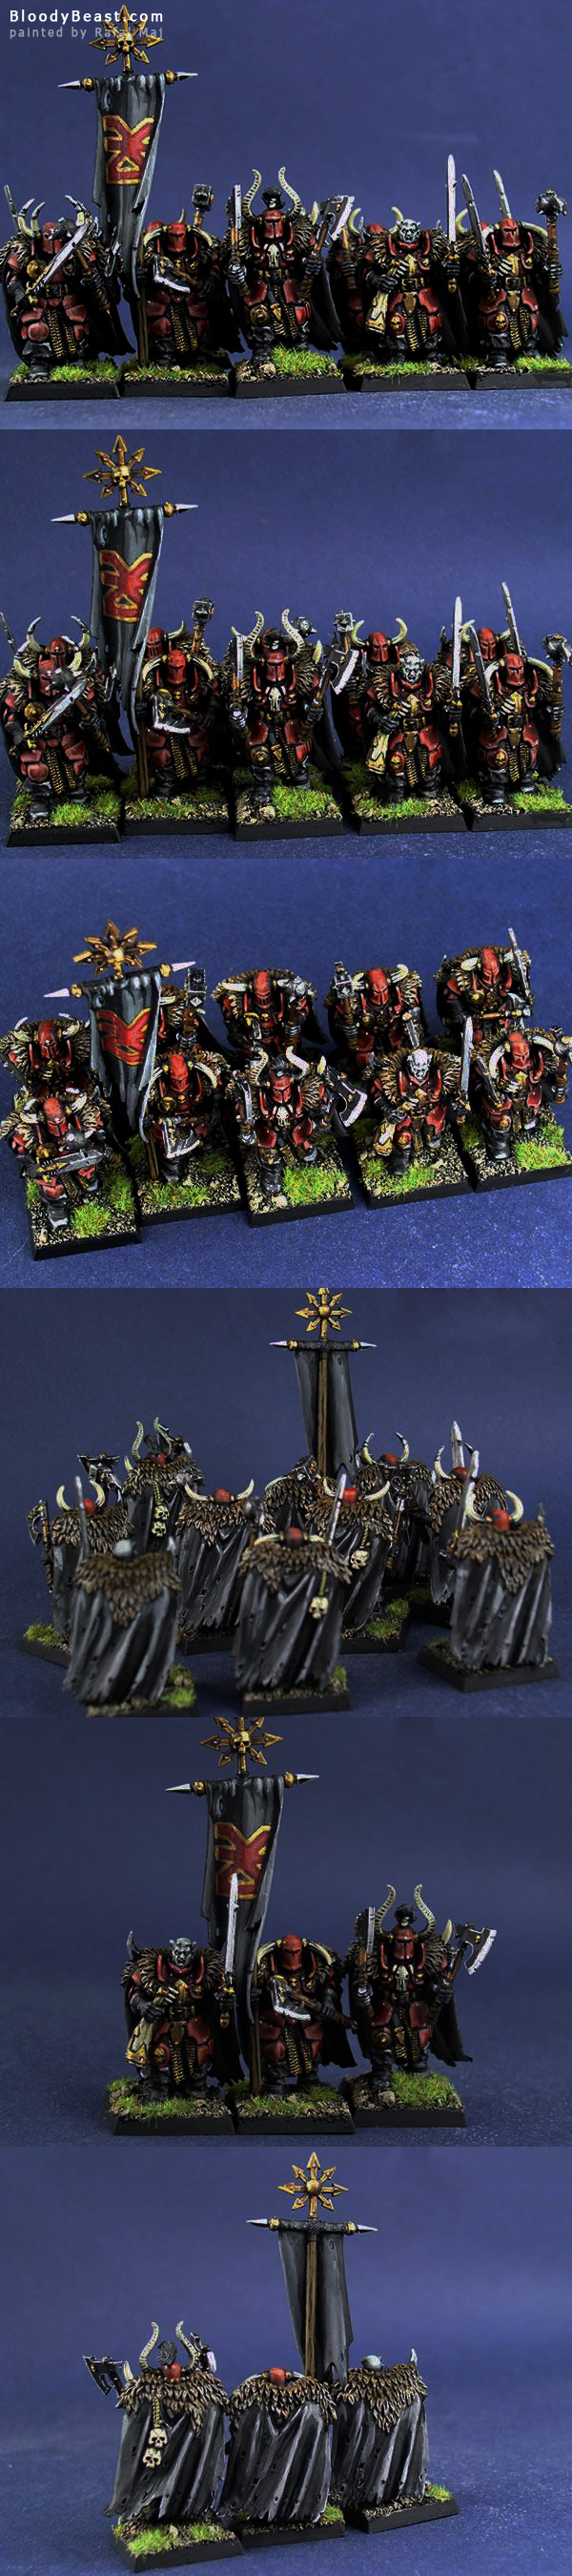 Chaos Warriors of Khorne painted by Rafal Maj (BloodyBeast.com)